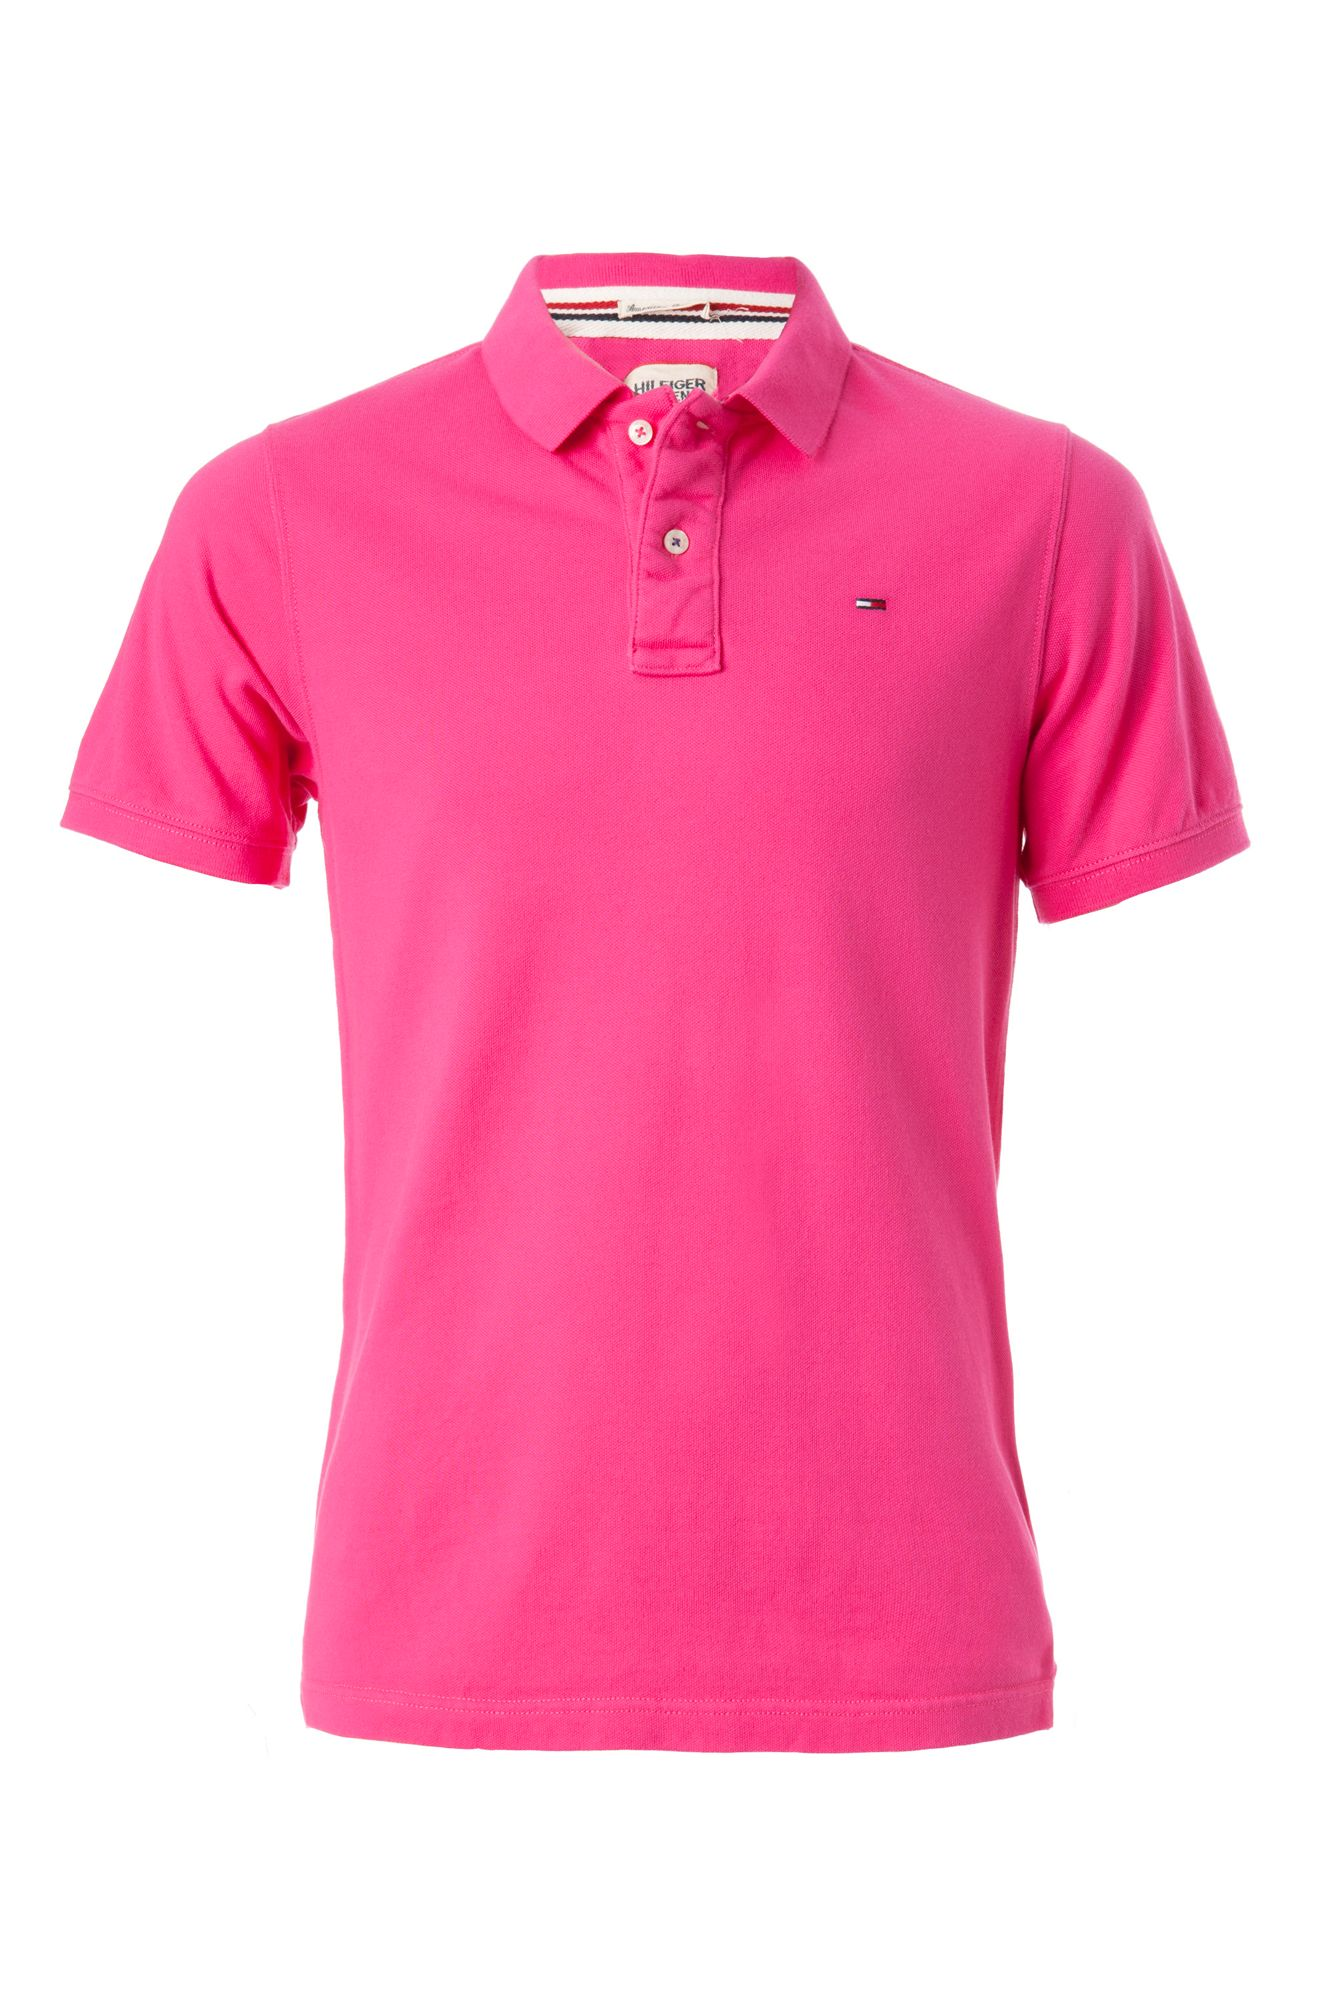 tommy hilfiger pilot polo in pink for men fuchsia lyst. Black Bedroom Furniture Sets. Home Design Ideas